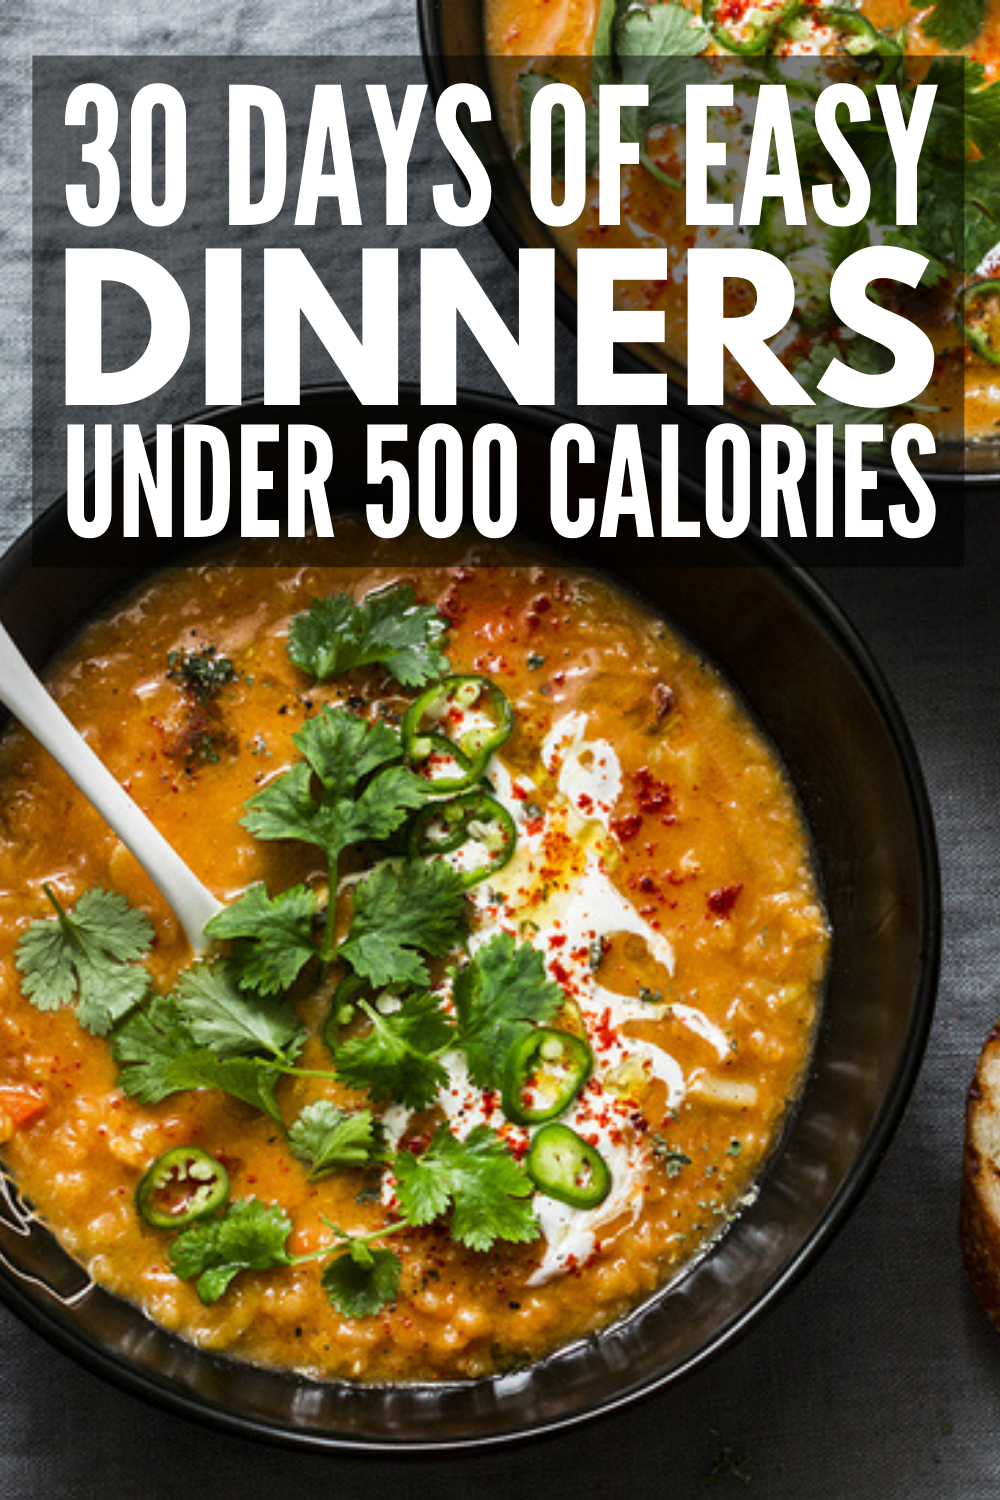 30 Healthy Dinners Under 500 Calories That Are Actually Filling Dinners Under 500 Calories 500 Calorie Dinners Ground Beef Recipes